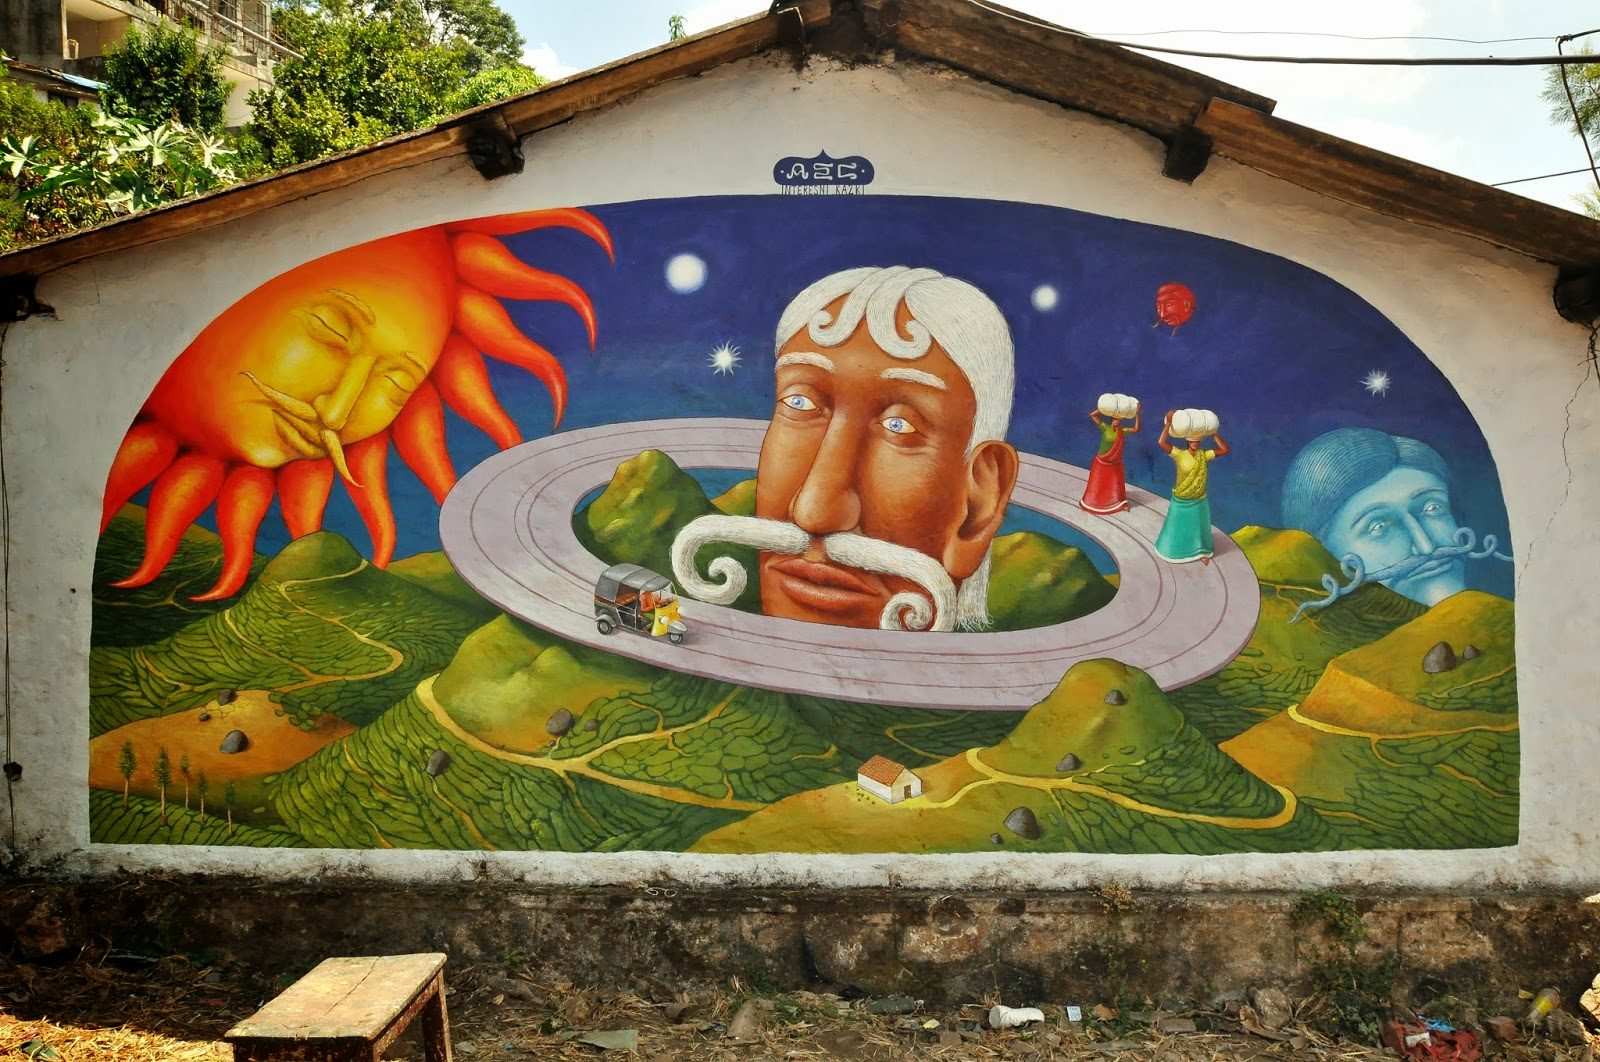 interesni-kazki-visit-of-saturn-new-mural-in-india-01